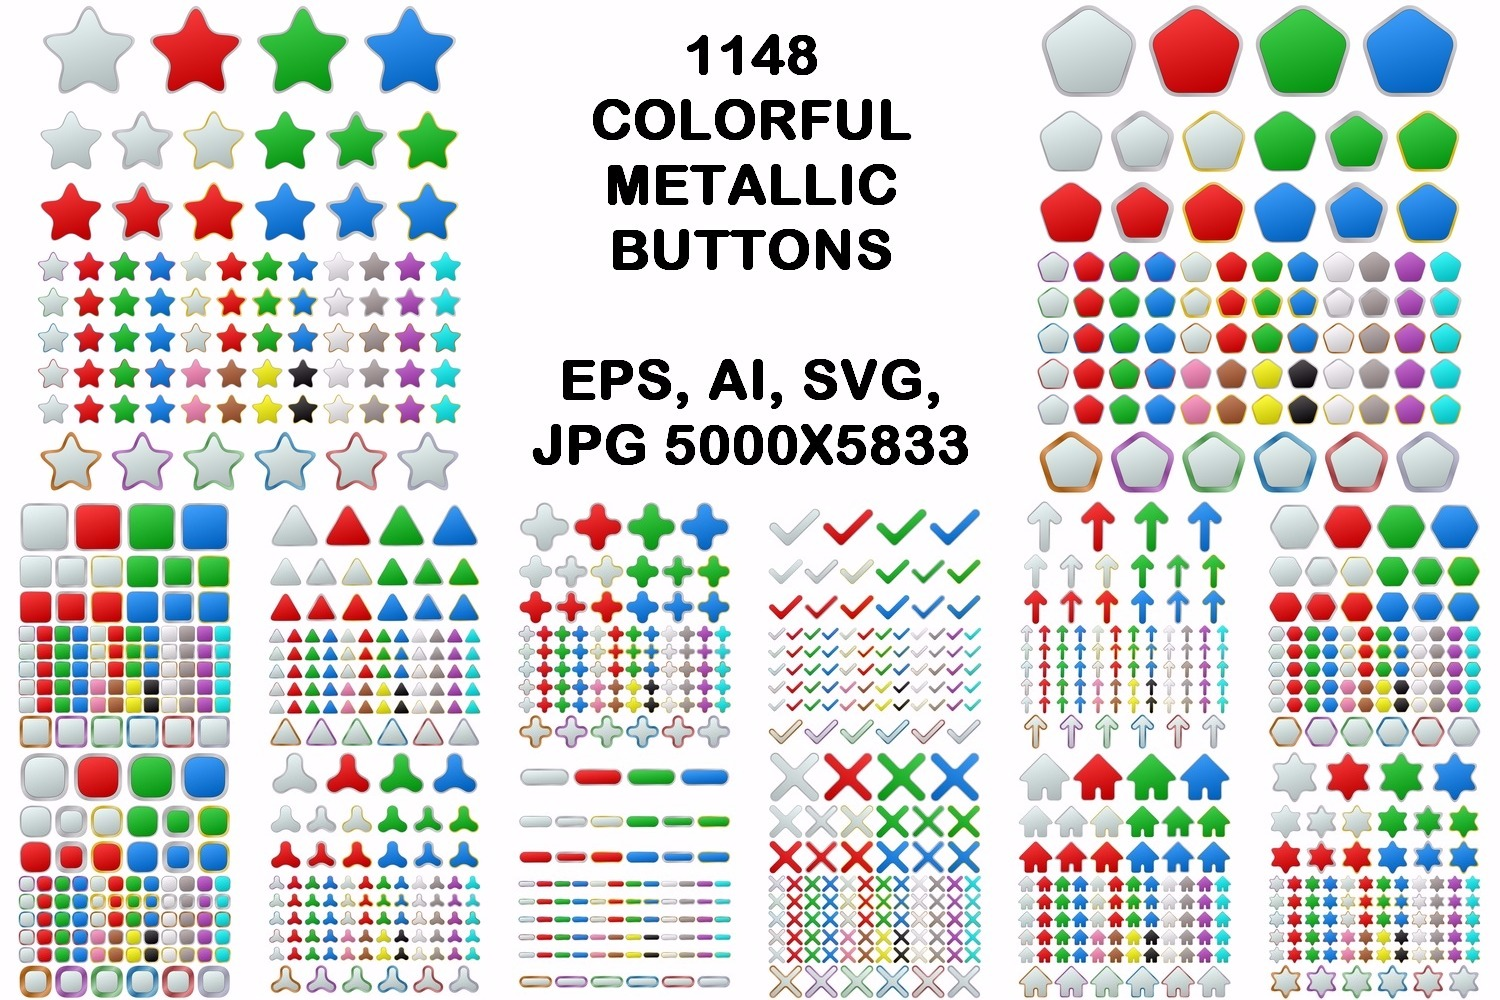 1148 colored geometric metallic buttons (EPS, AI, SVG, JPG 5000x5833) example image 1